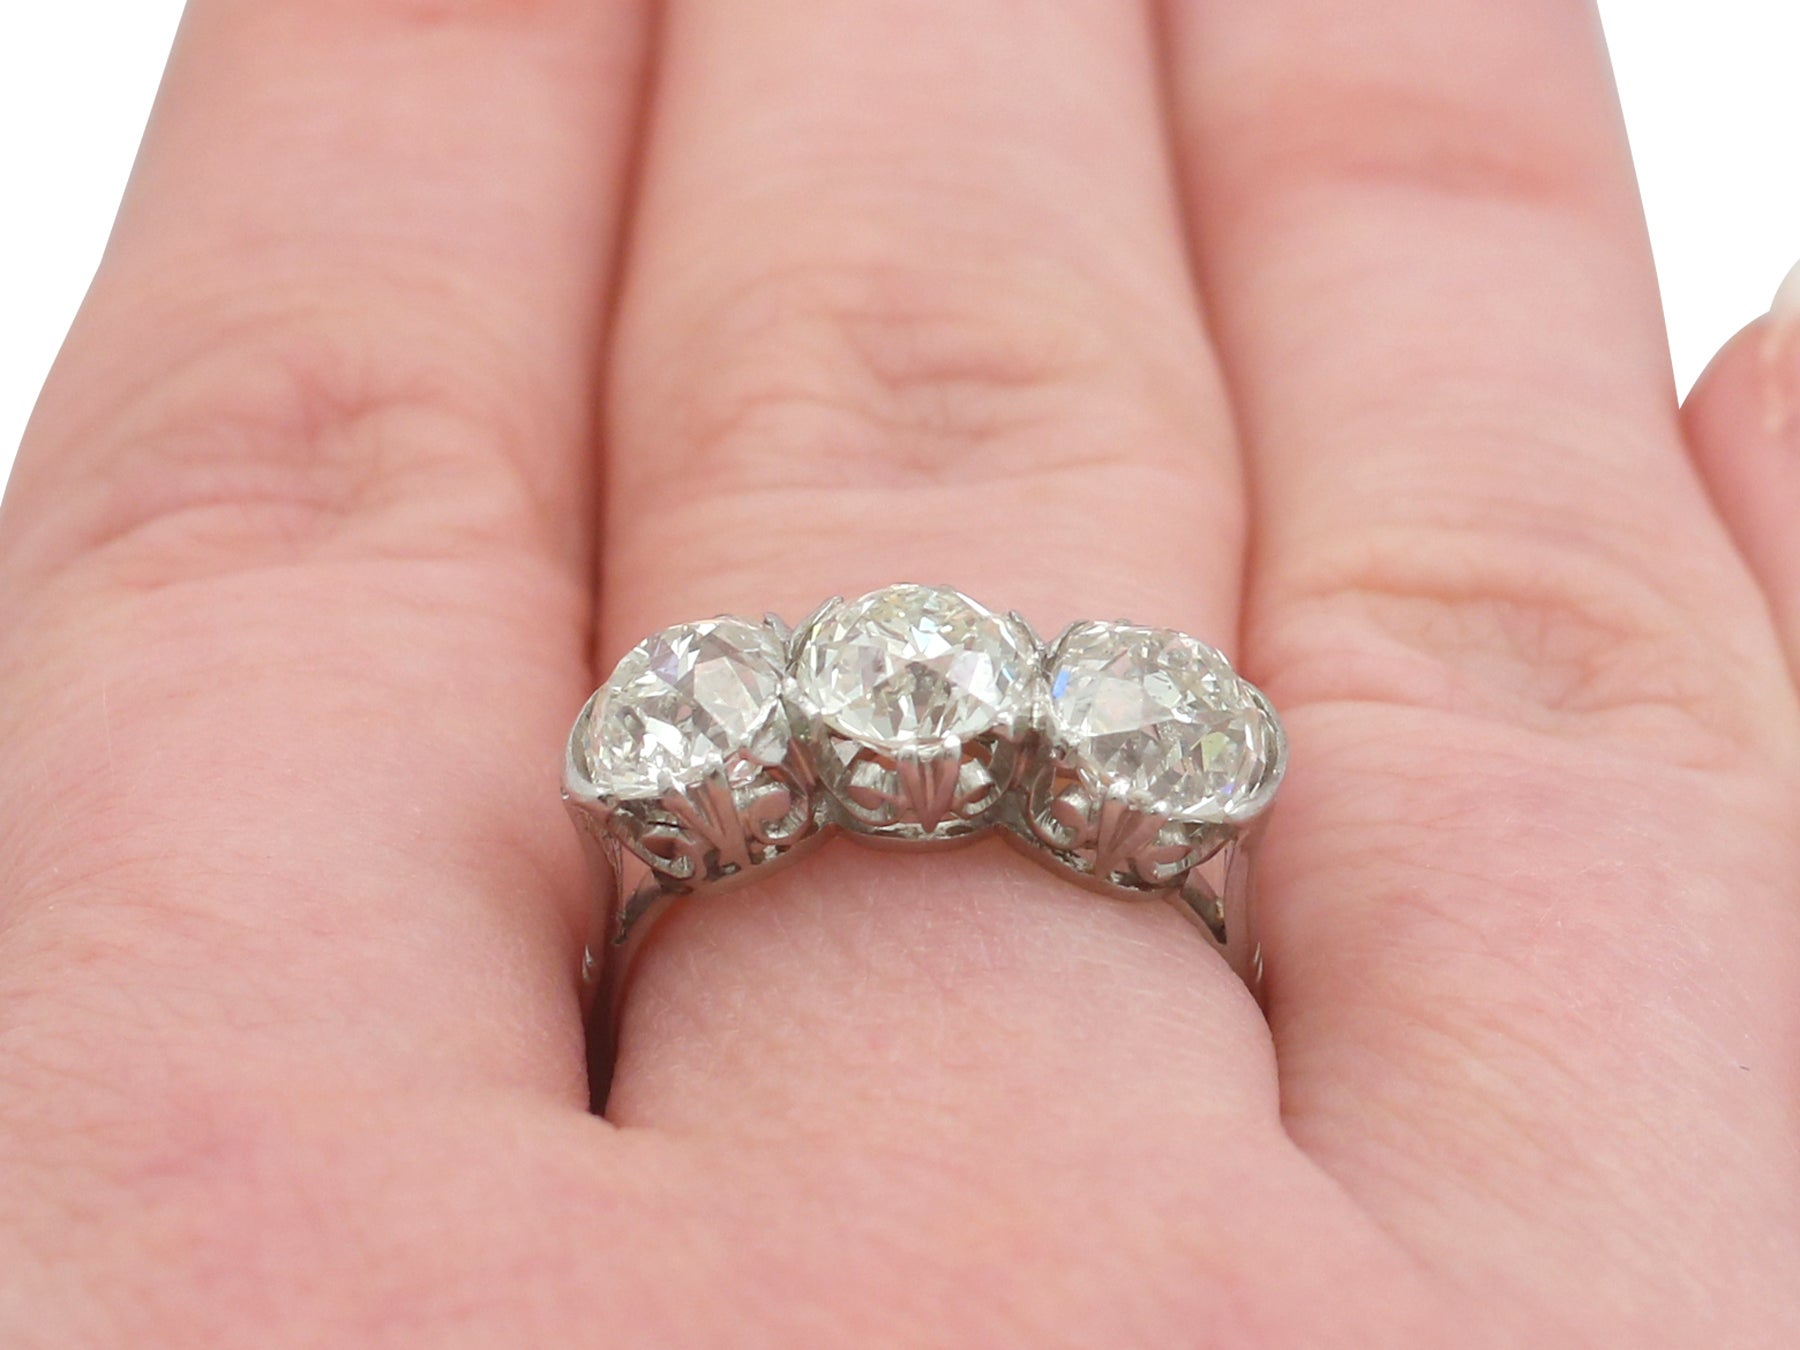 Antique 4.81 Carat Diamond Gold Trilogy Ring For Sale at 1stdibs